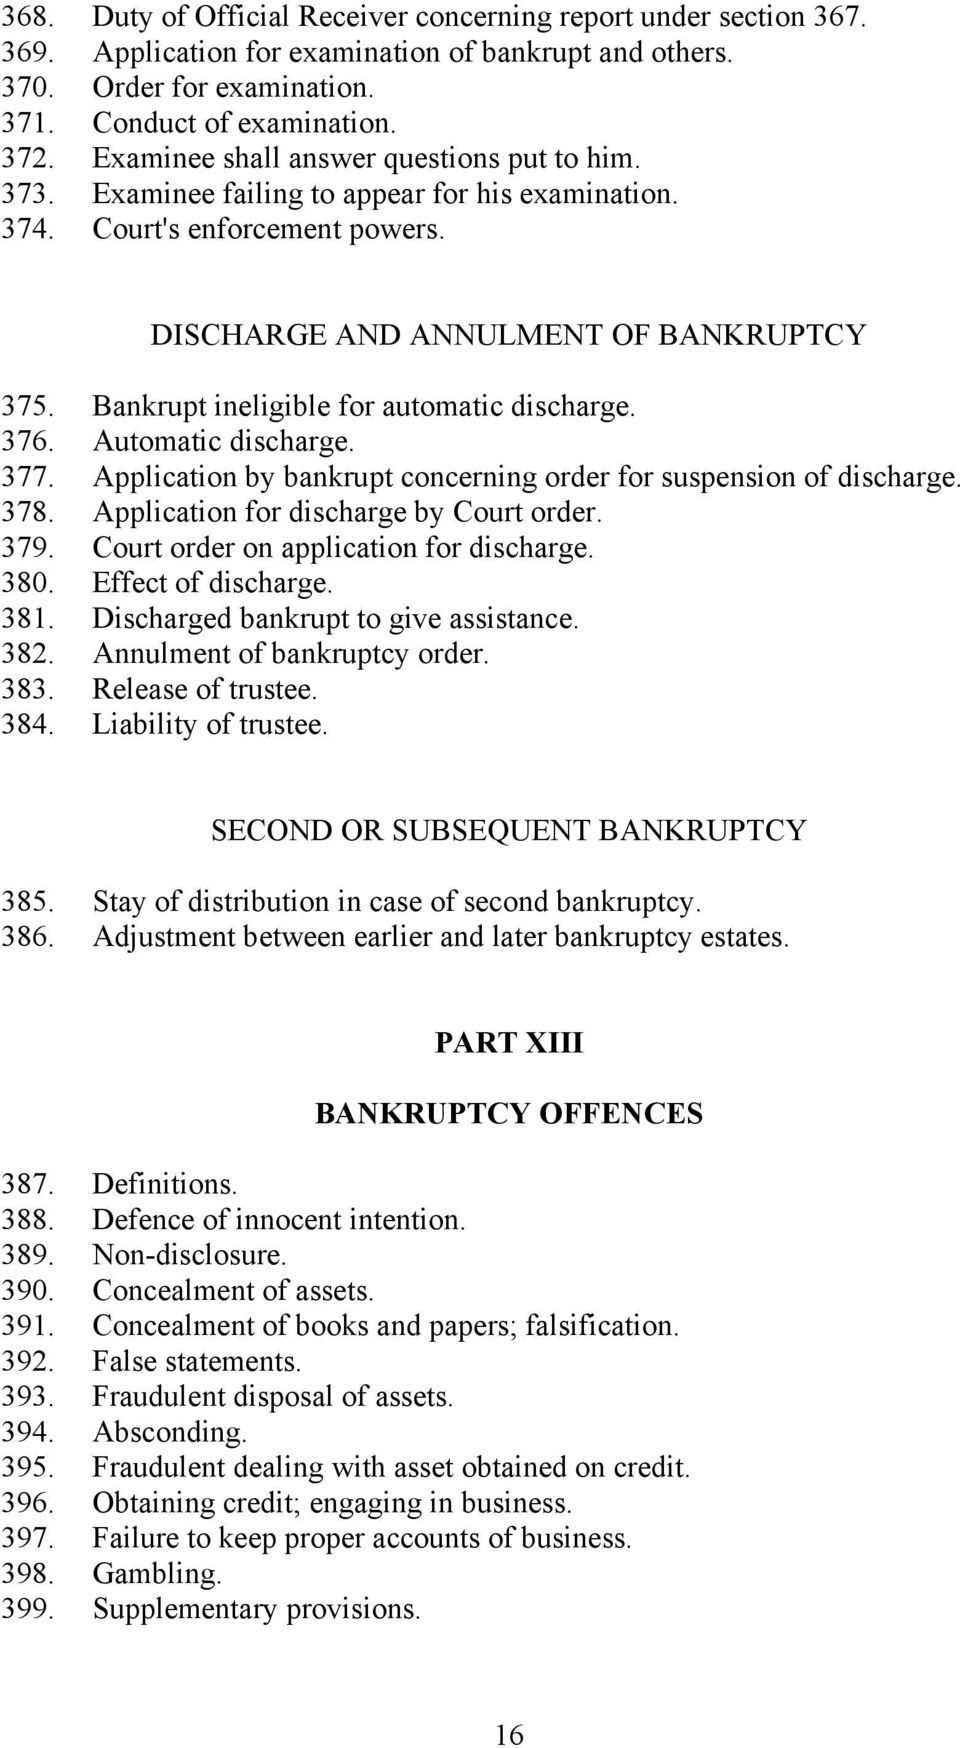 Bankrupt ineligible for automatic discharge. 376. Automatic discharge. 377. Application by bankrupt concerning order for suspension of discharge. 378. Application for discharge by Court order. 379.